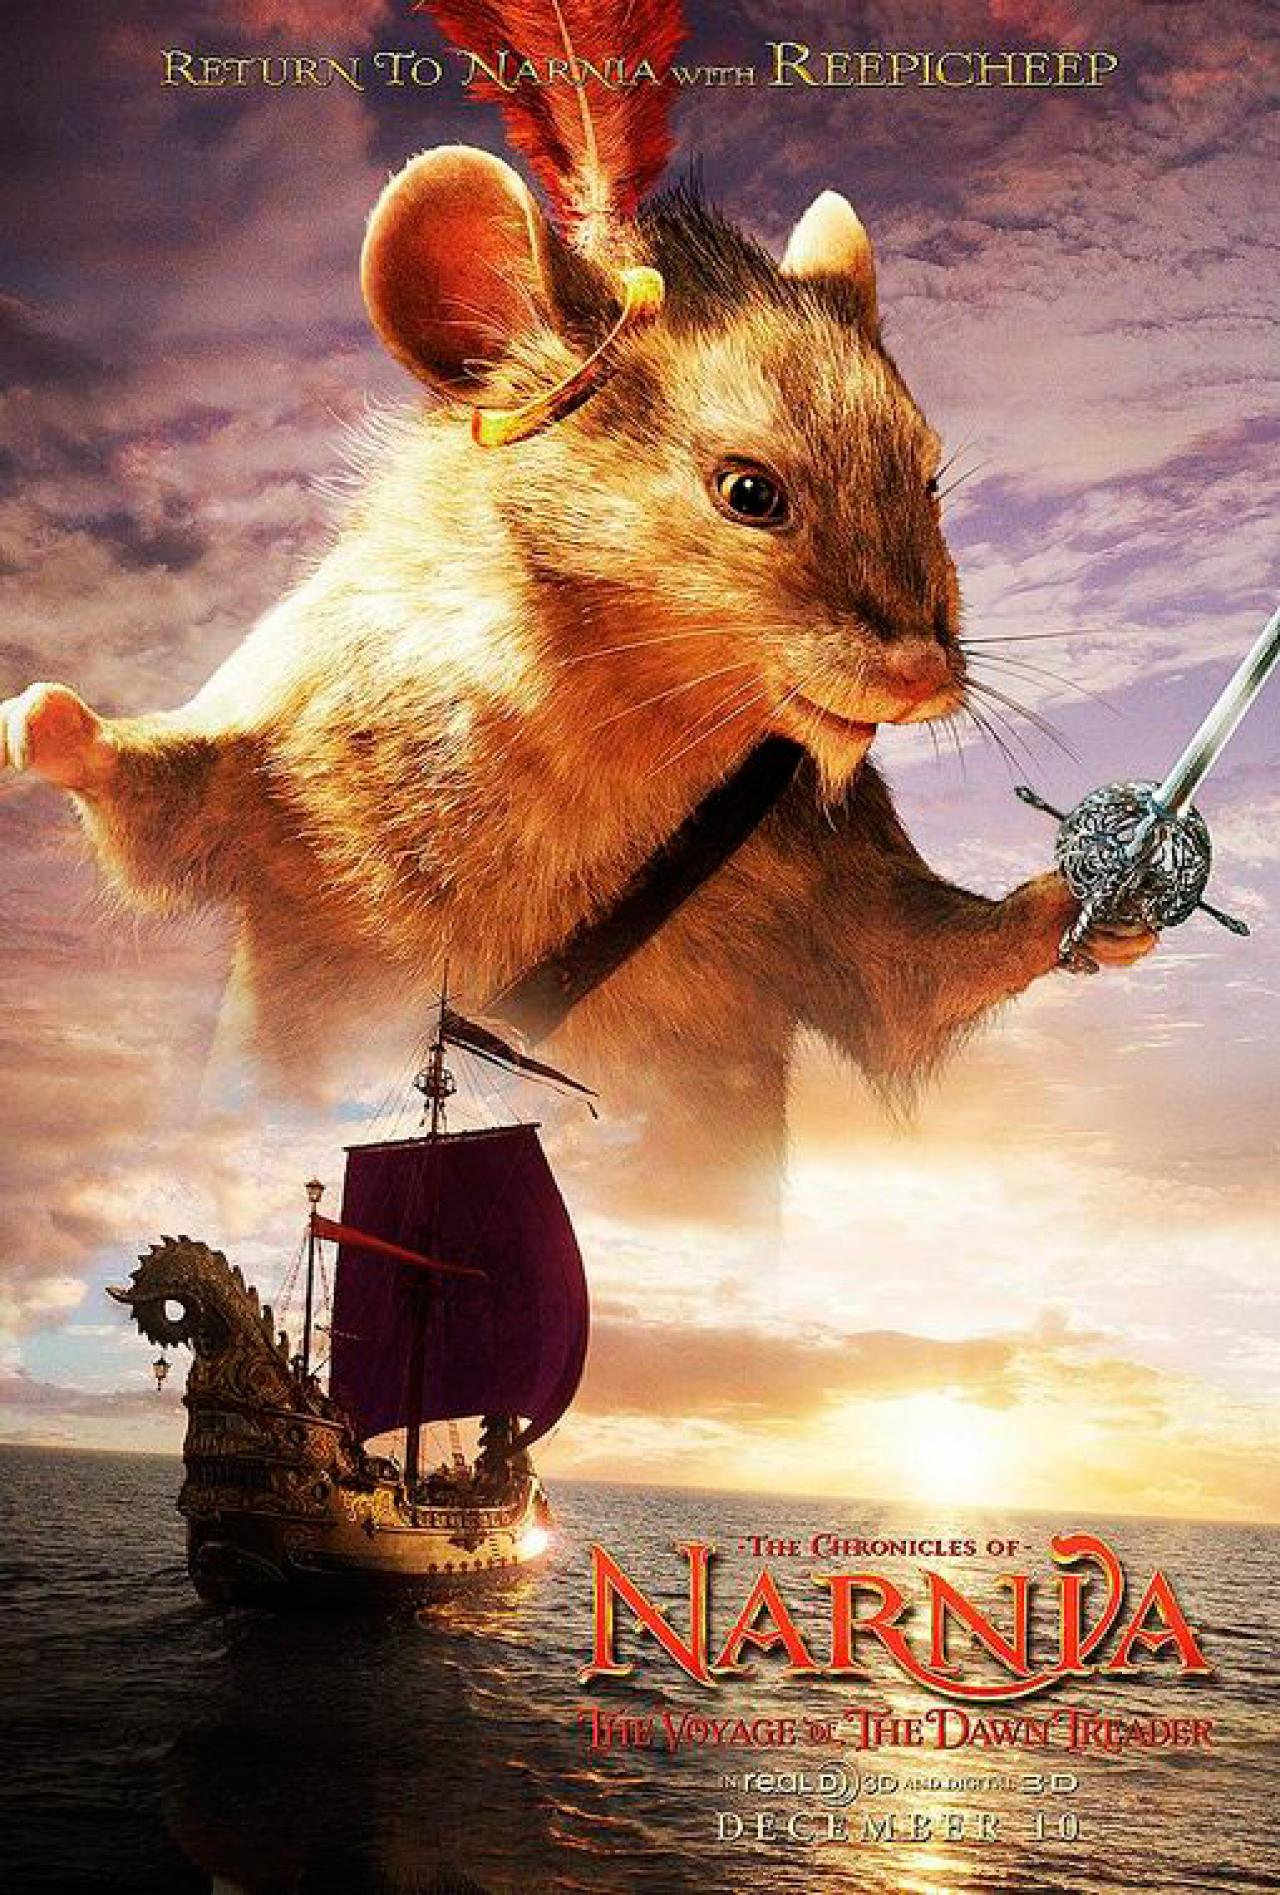 the chronicles of narnia silver chair trailer 2016 best chairs for sex 4 magical new posters voyage dawn